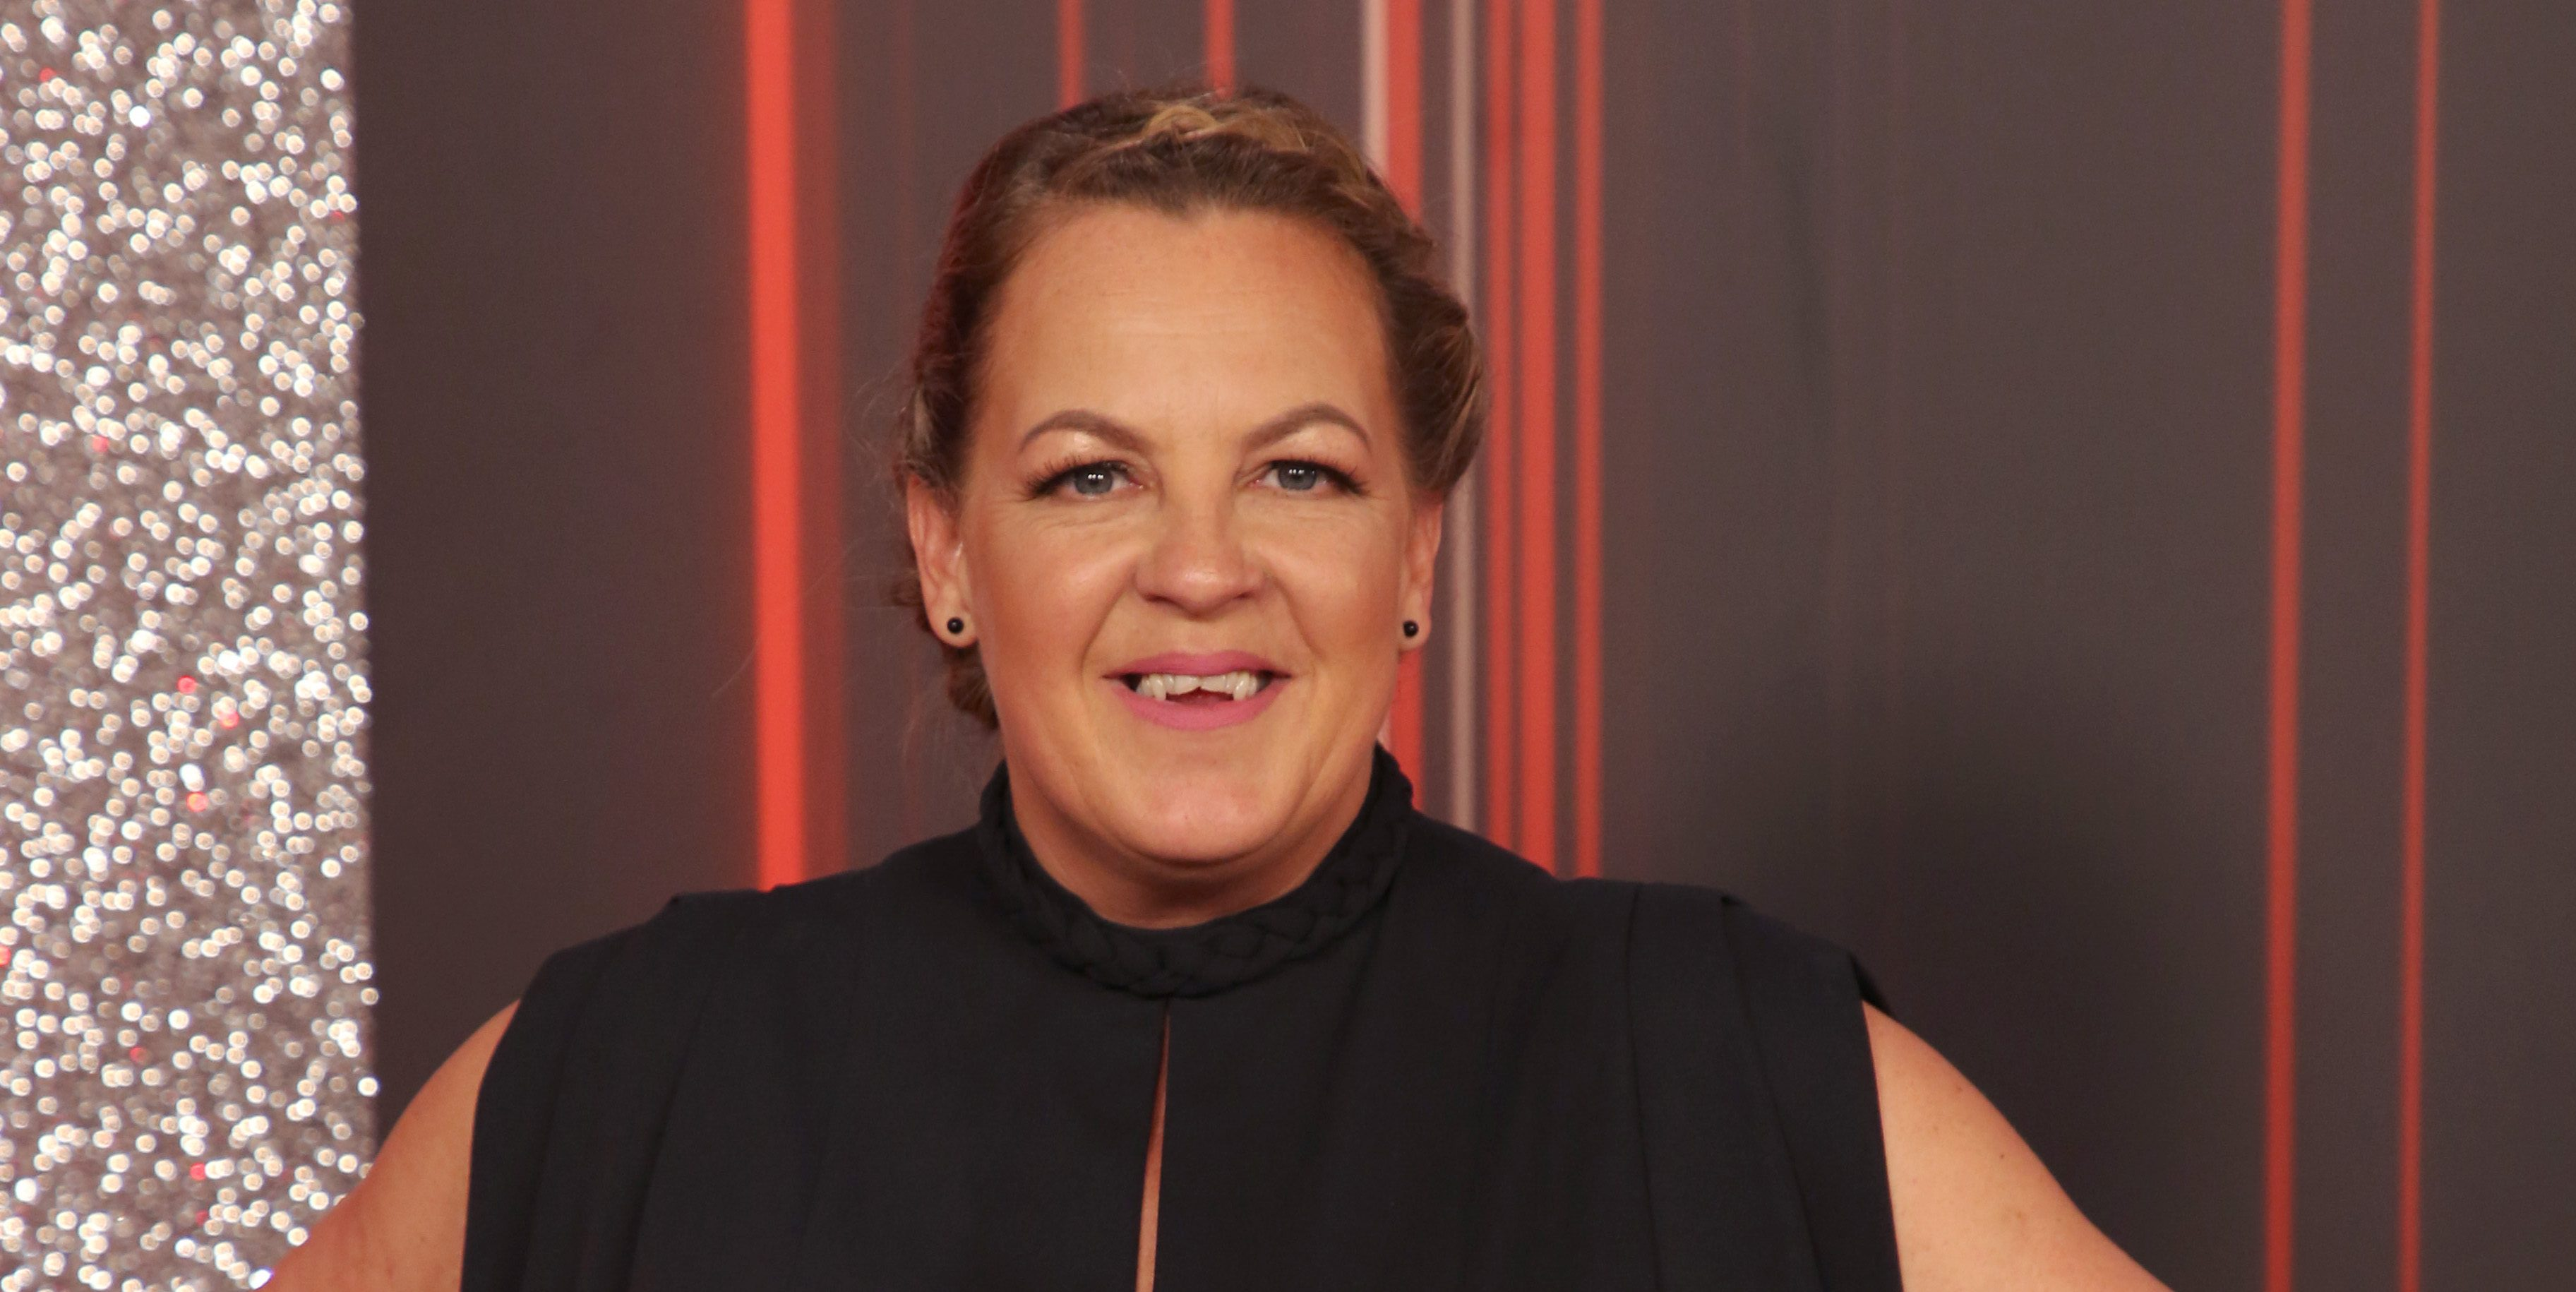 EastEnders' Lorraine Stanley posts pic with Patsy Palmer calling it 'highlight of her year'